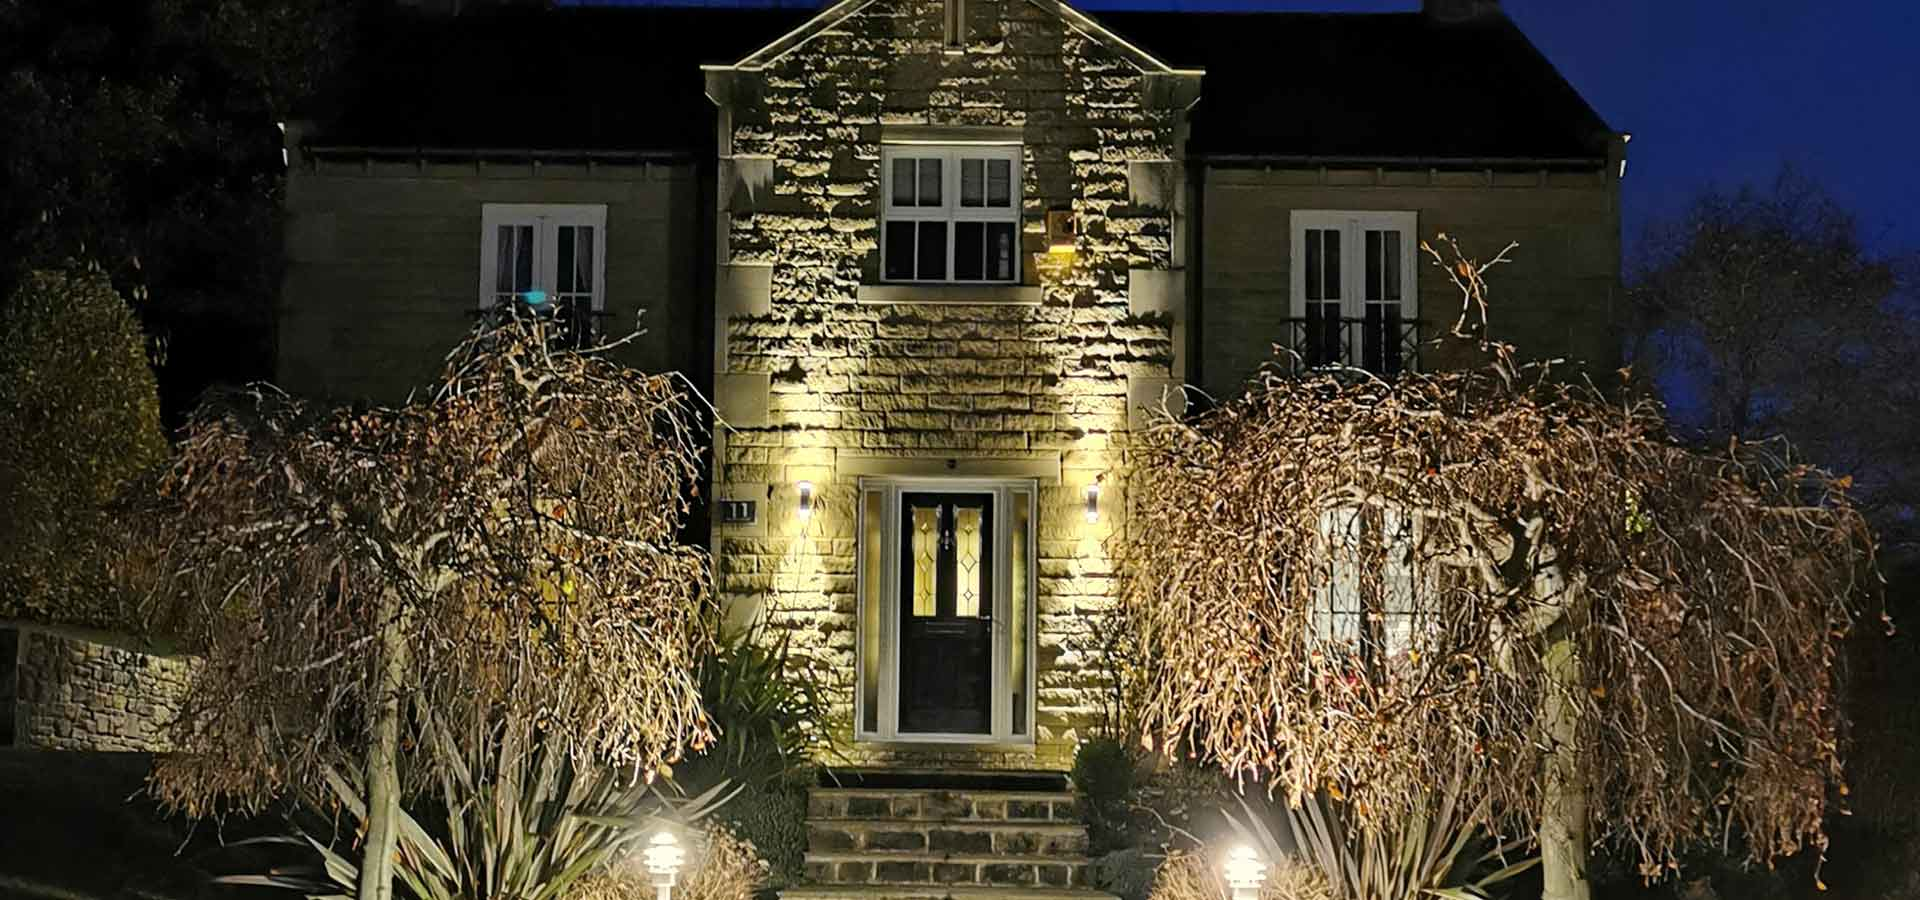 A large stone cottage in darkness lit up with outdoor lighting